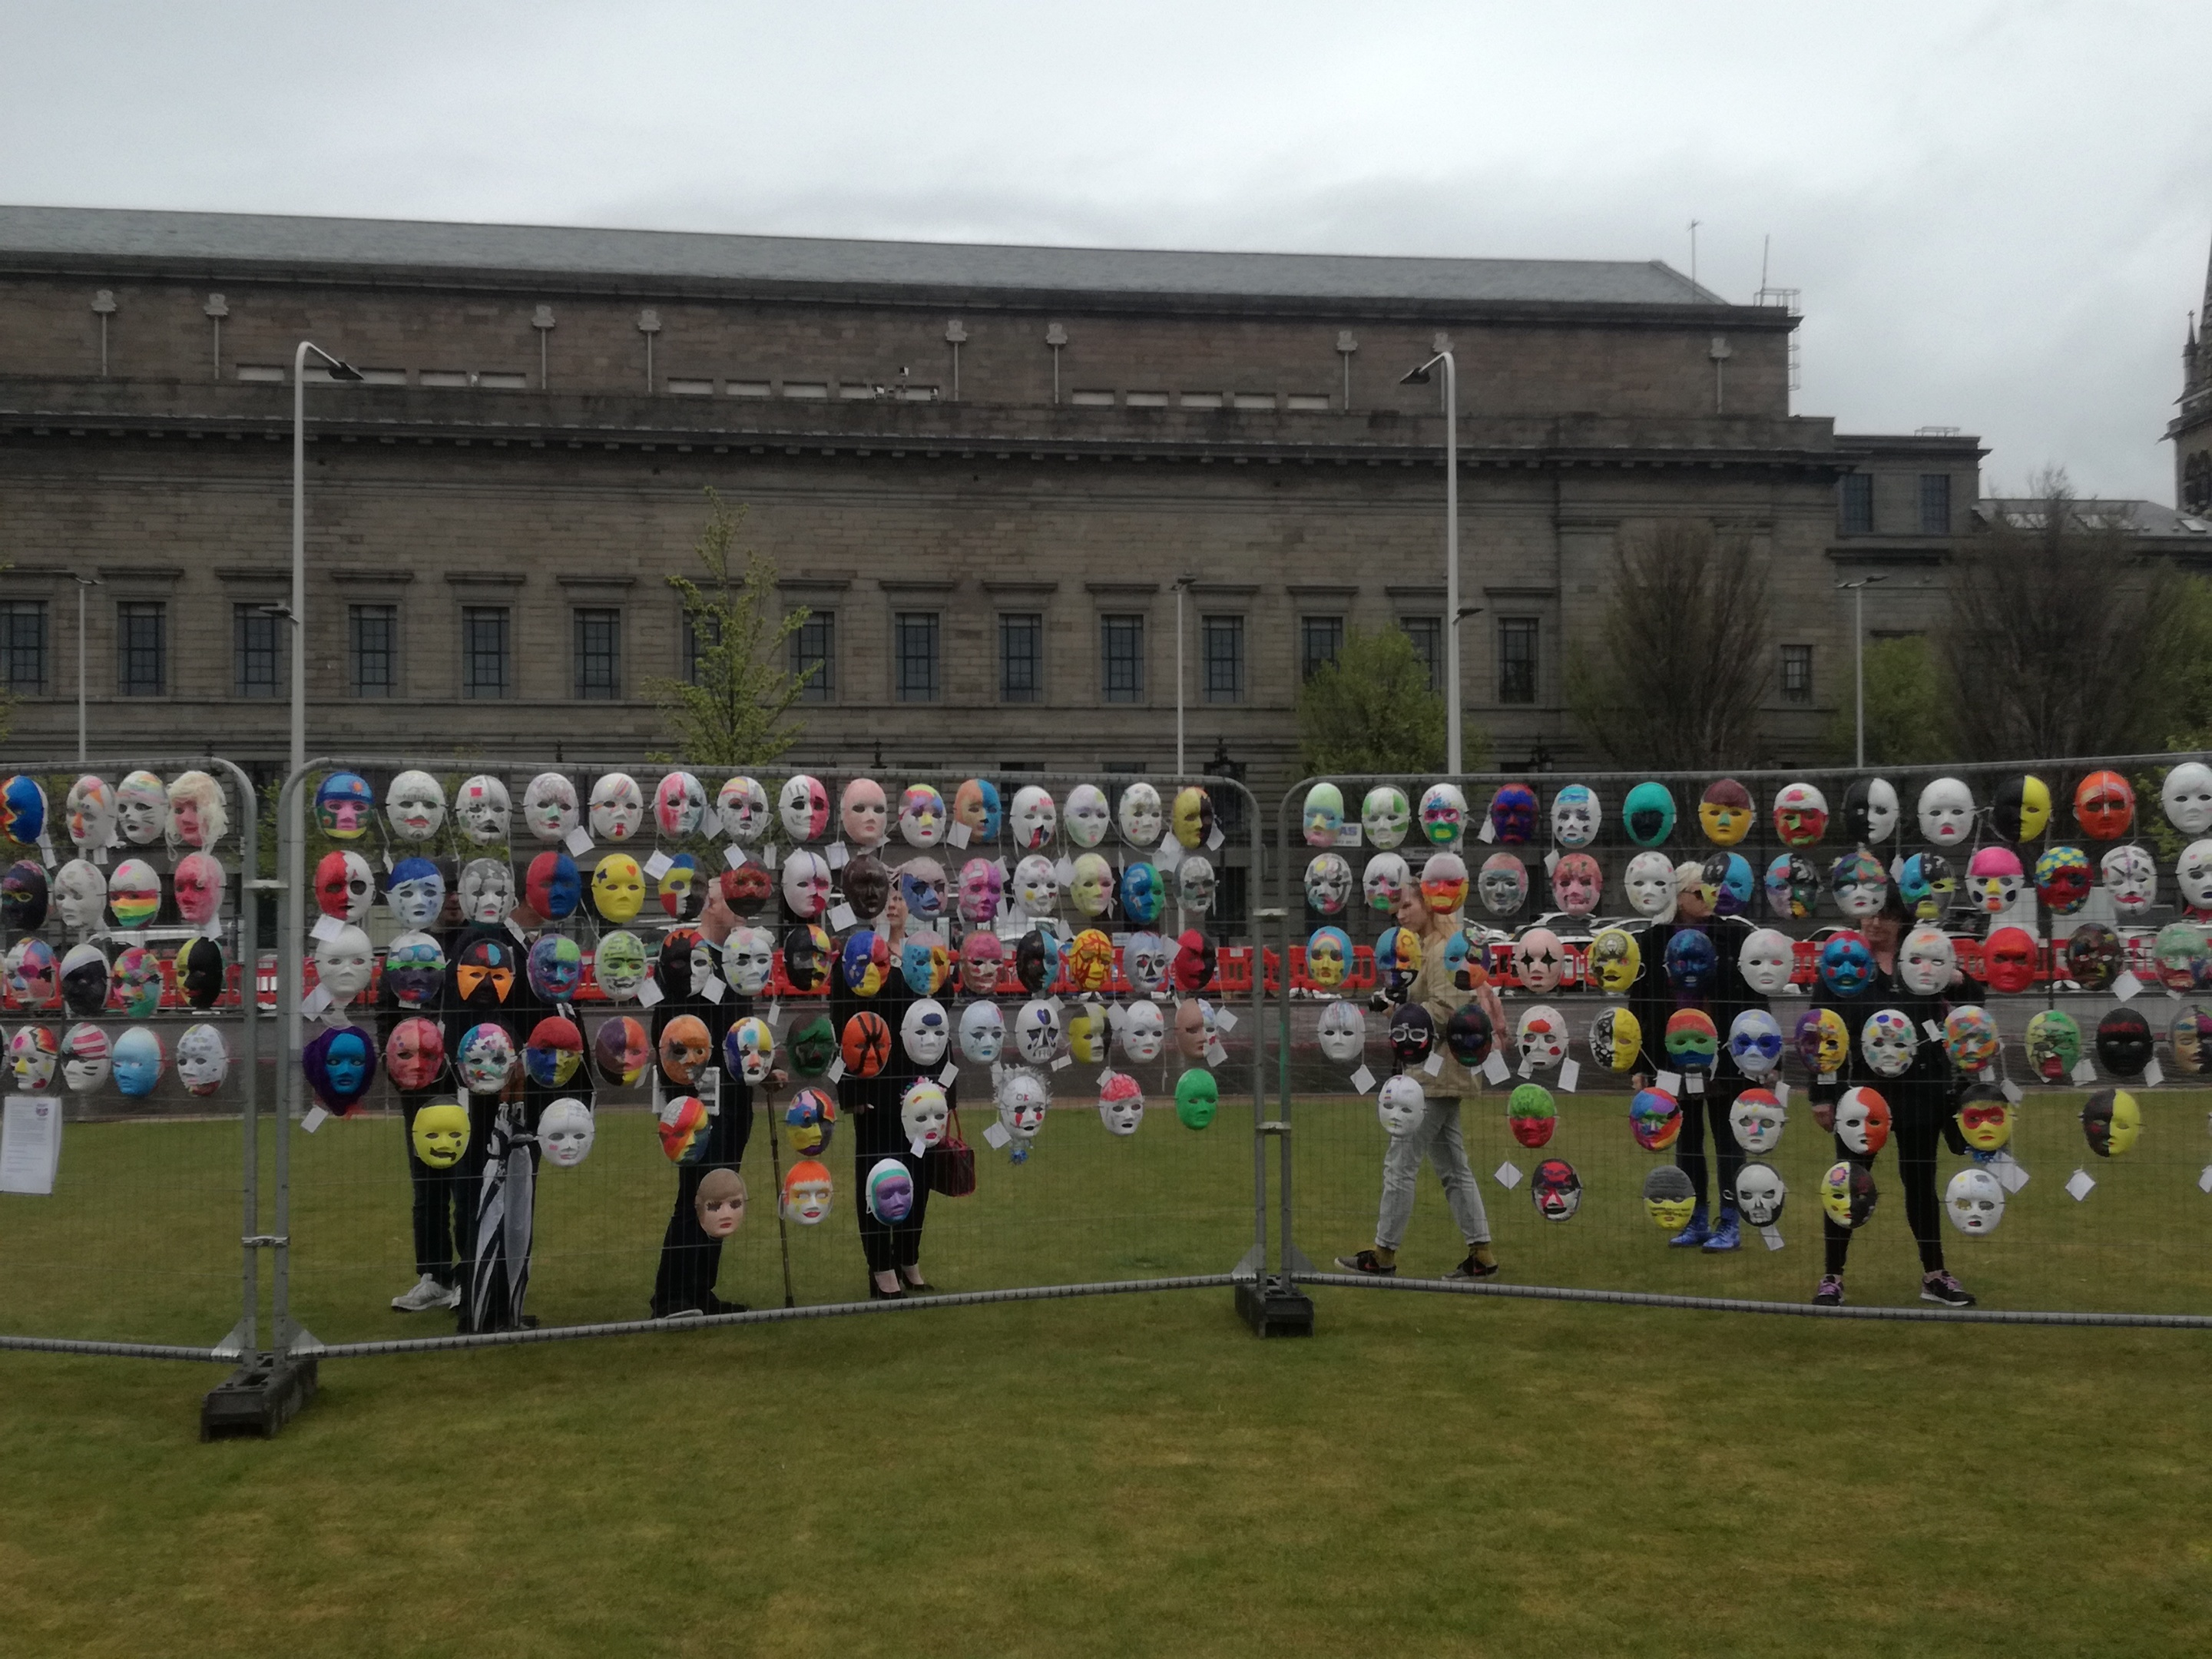 900 masks went on display in Slessor Gardens to mark the start of the festival.